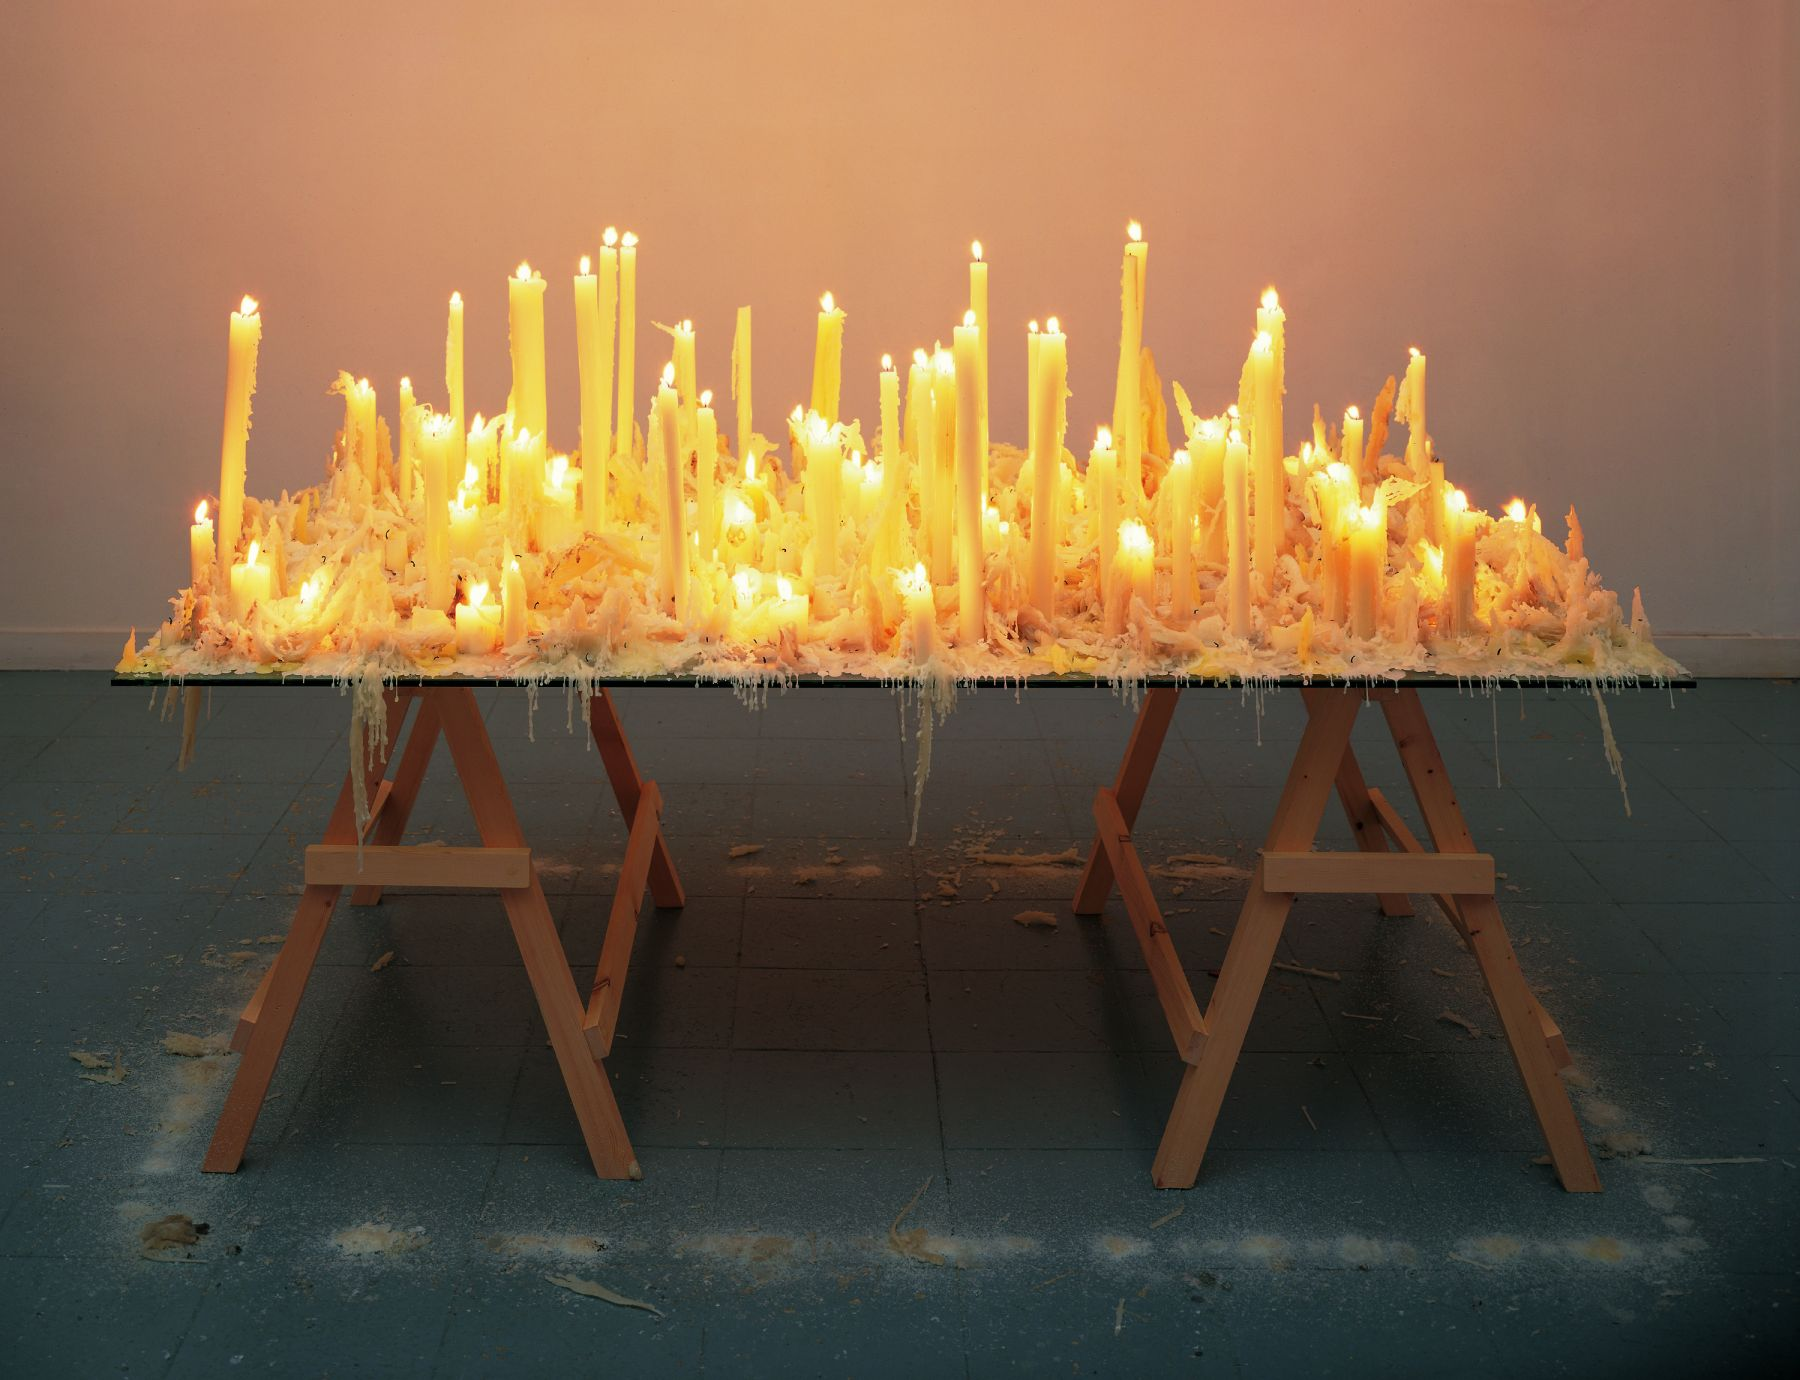 No Place Better Than This, 1996, Glass, wood and candles